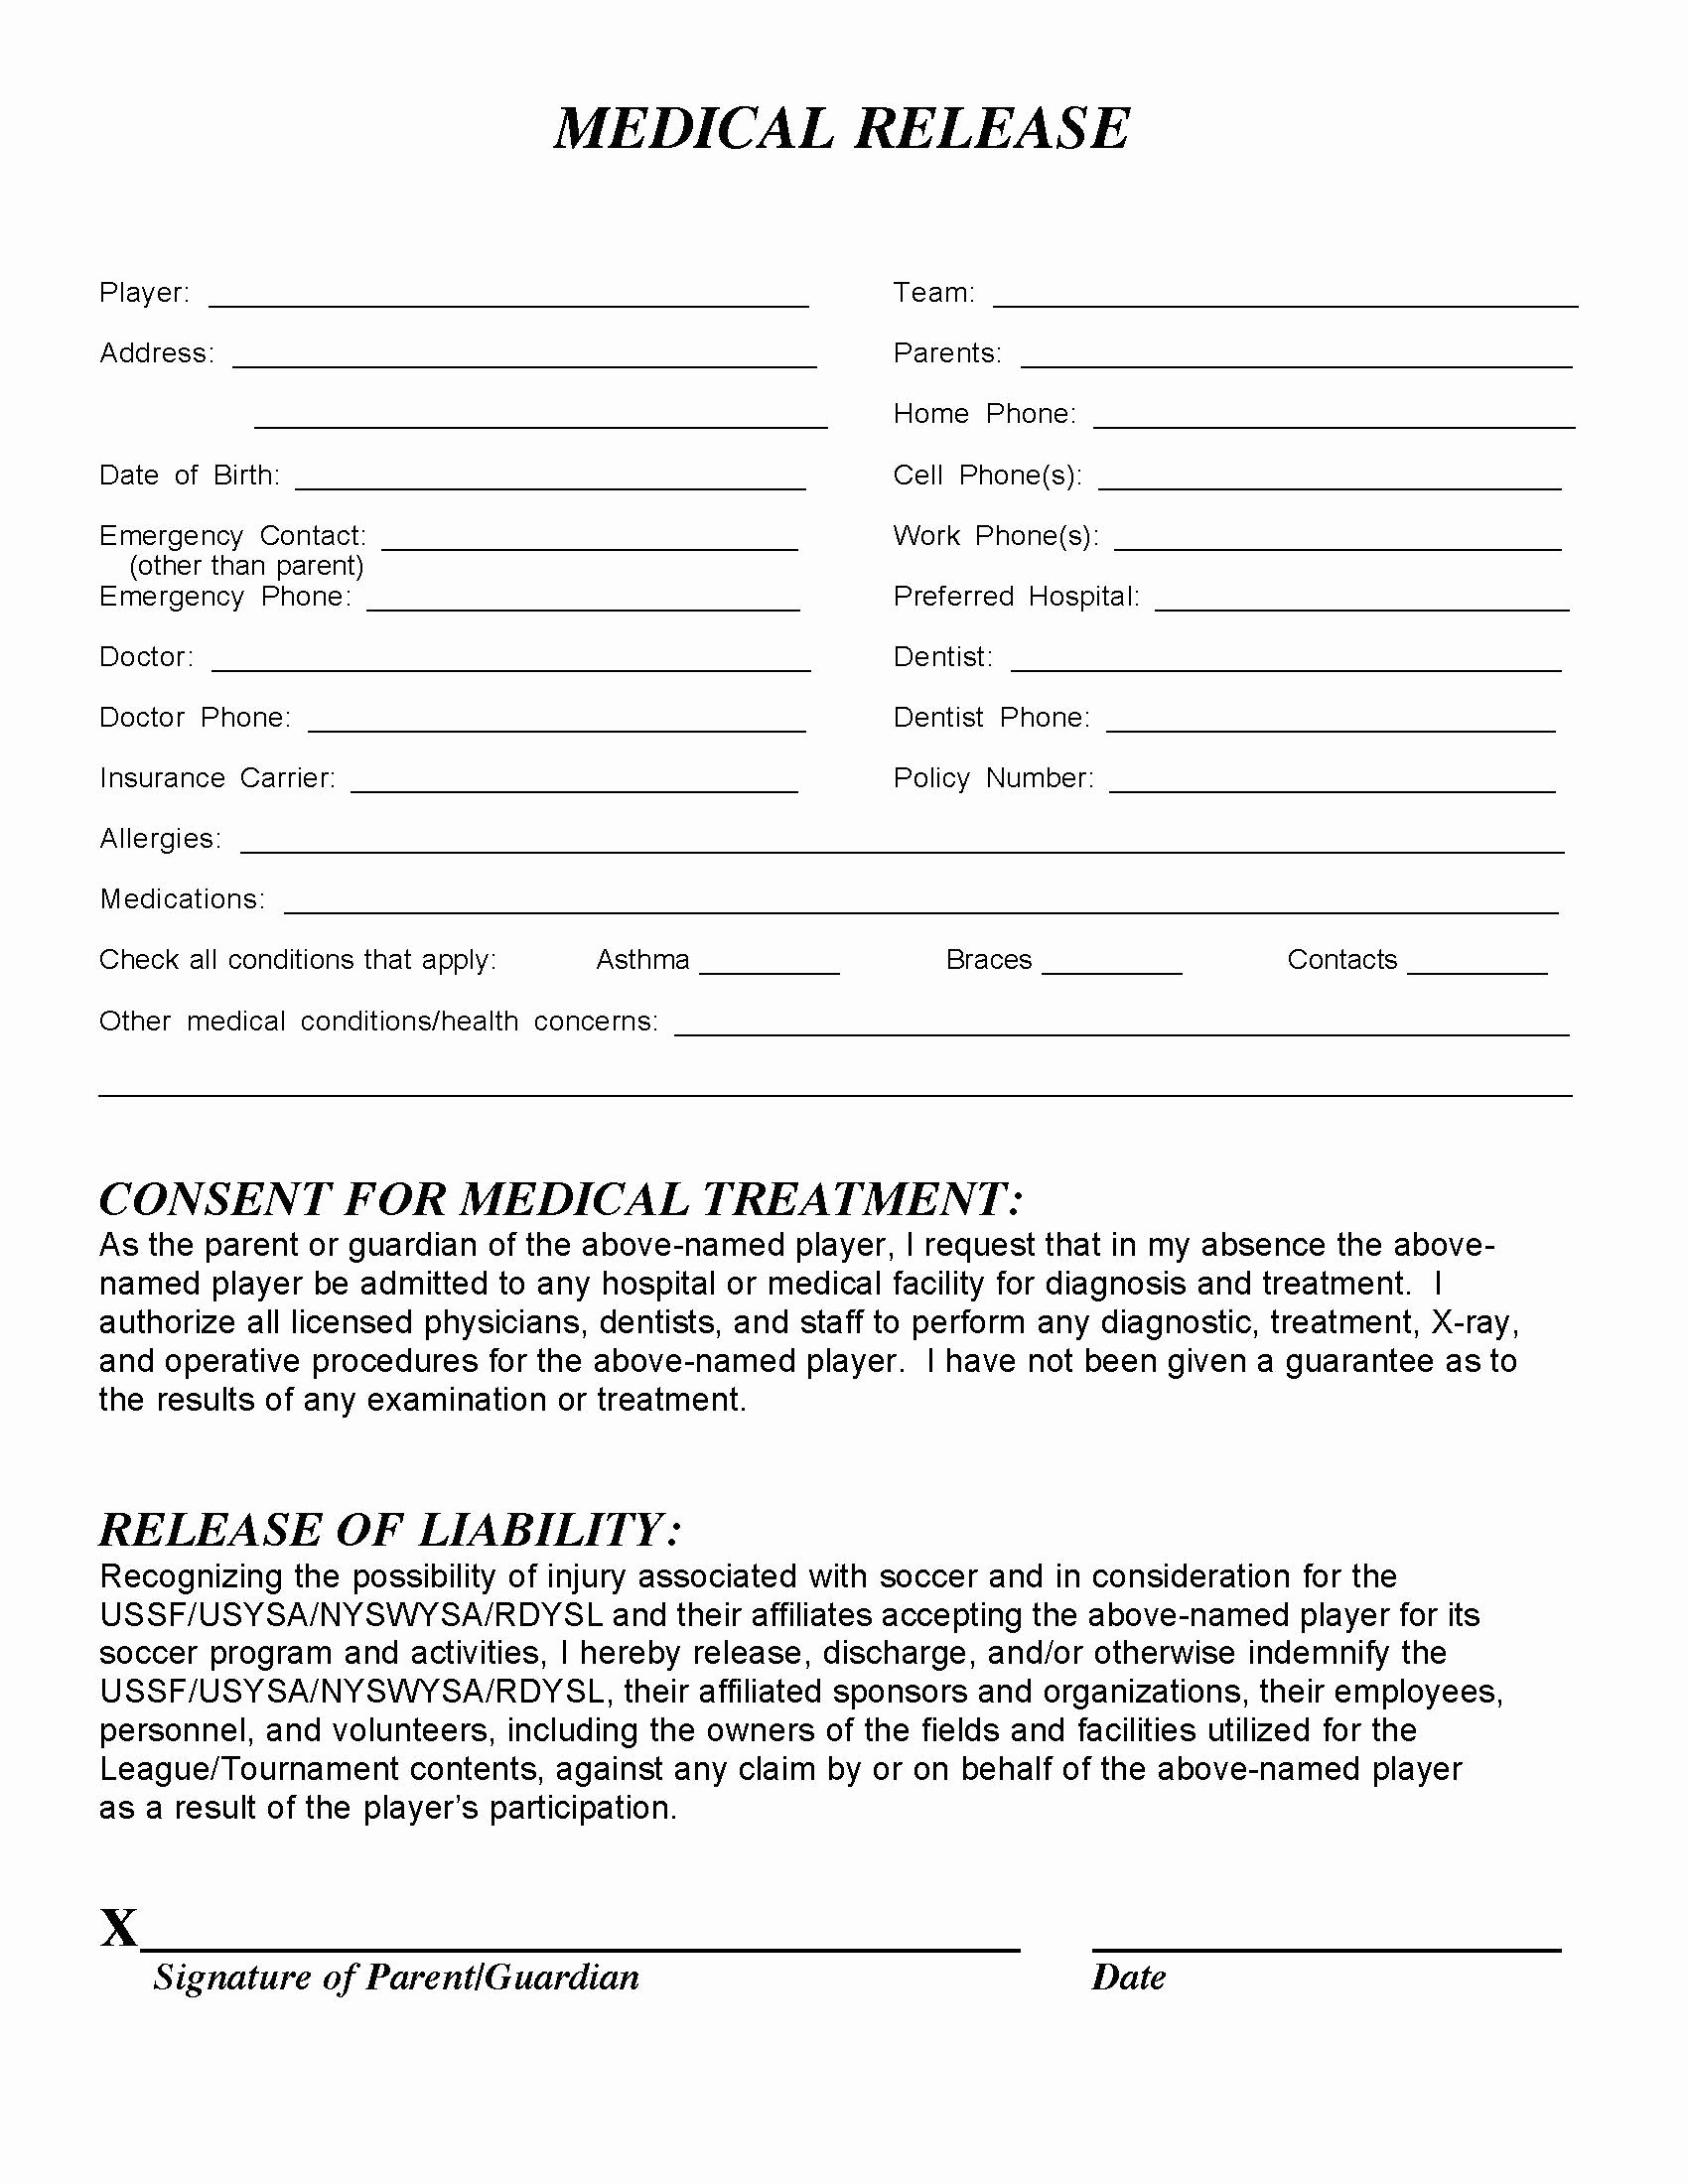 Medical Release form Template Elegant Medical Release form – Templates Free Printable